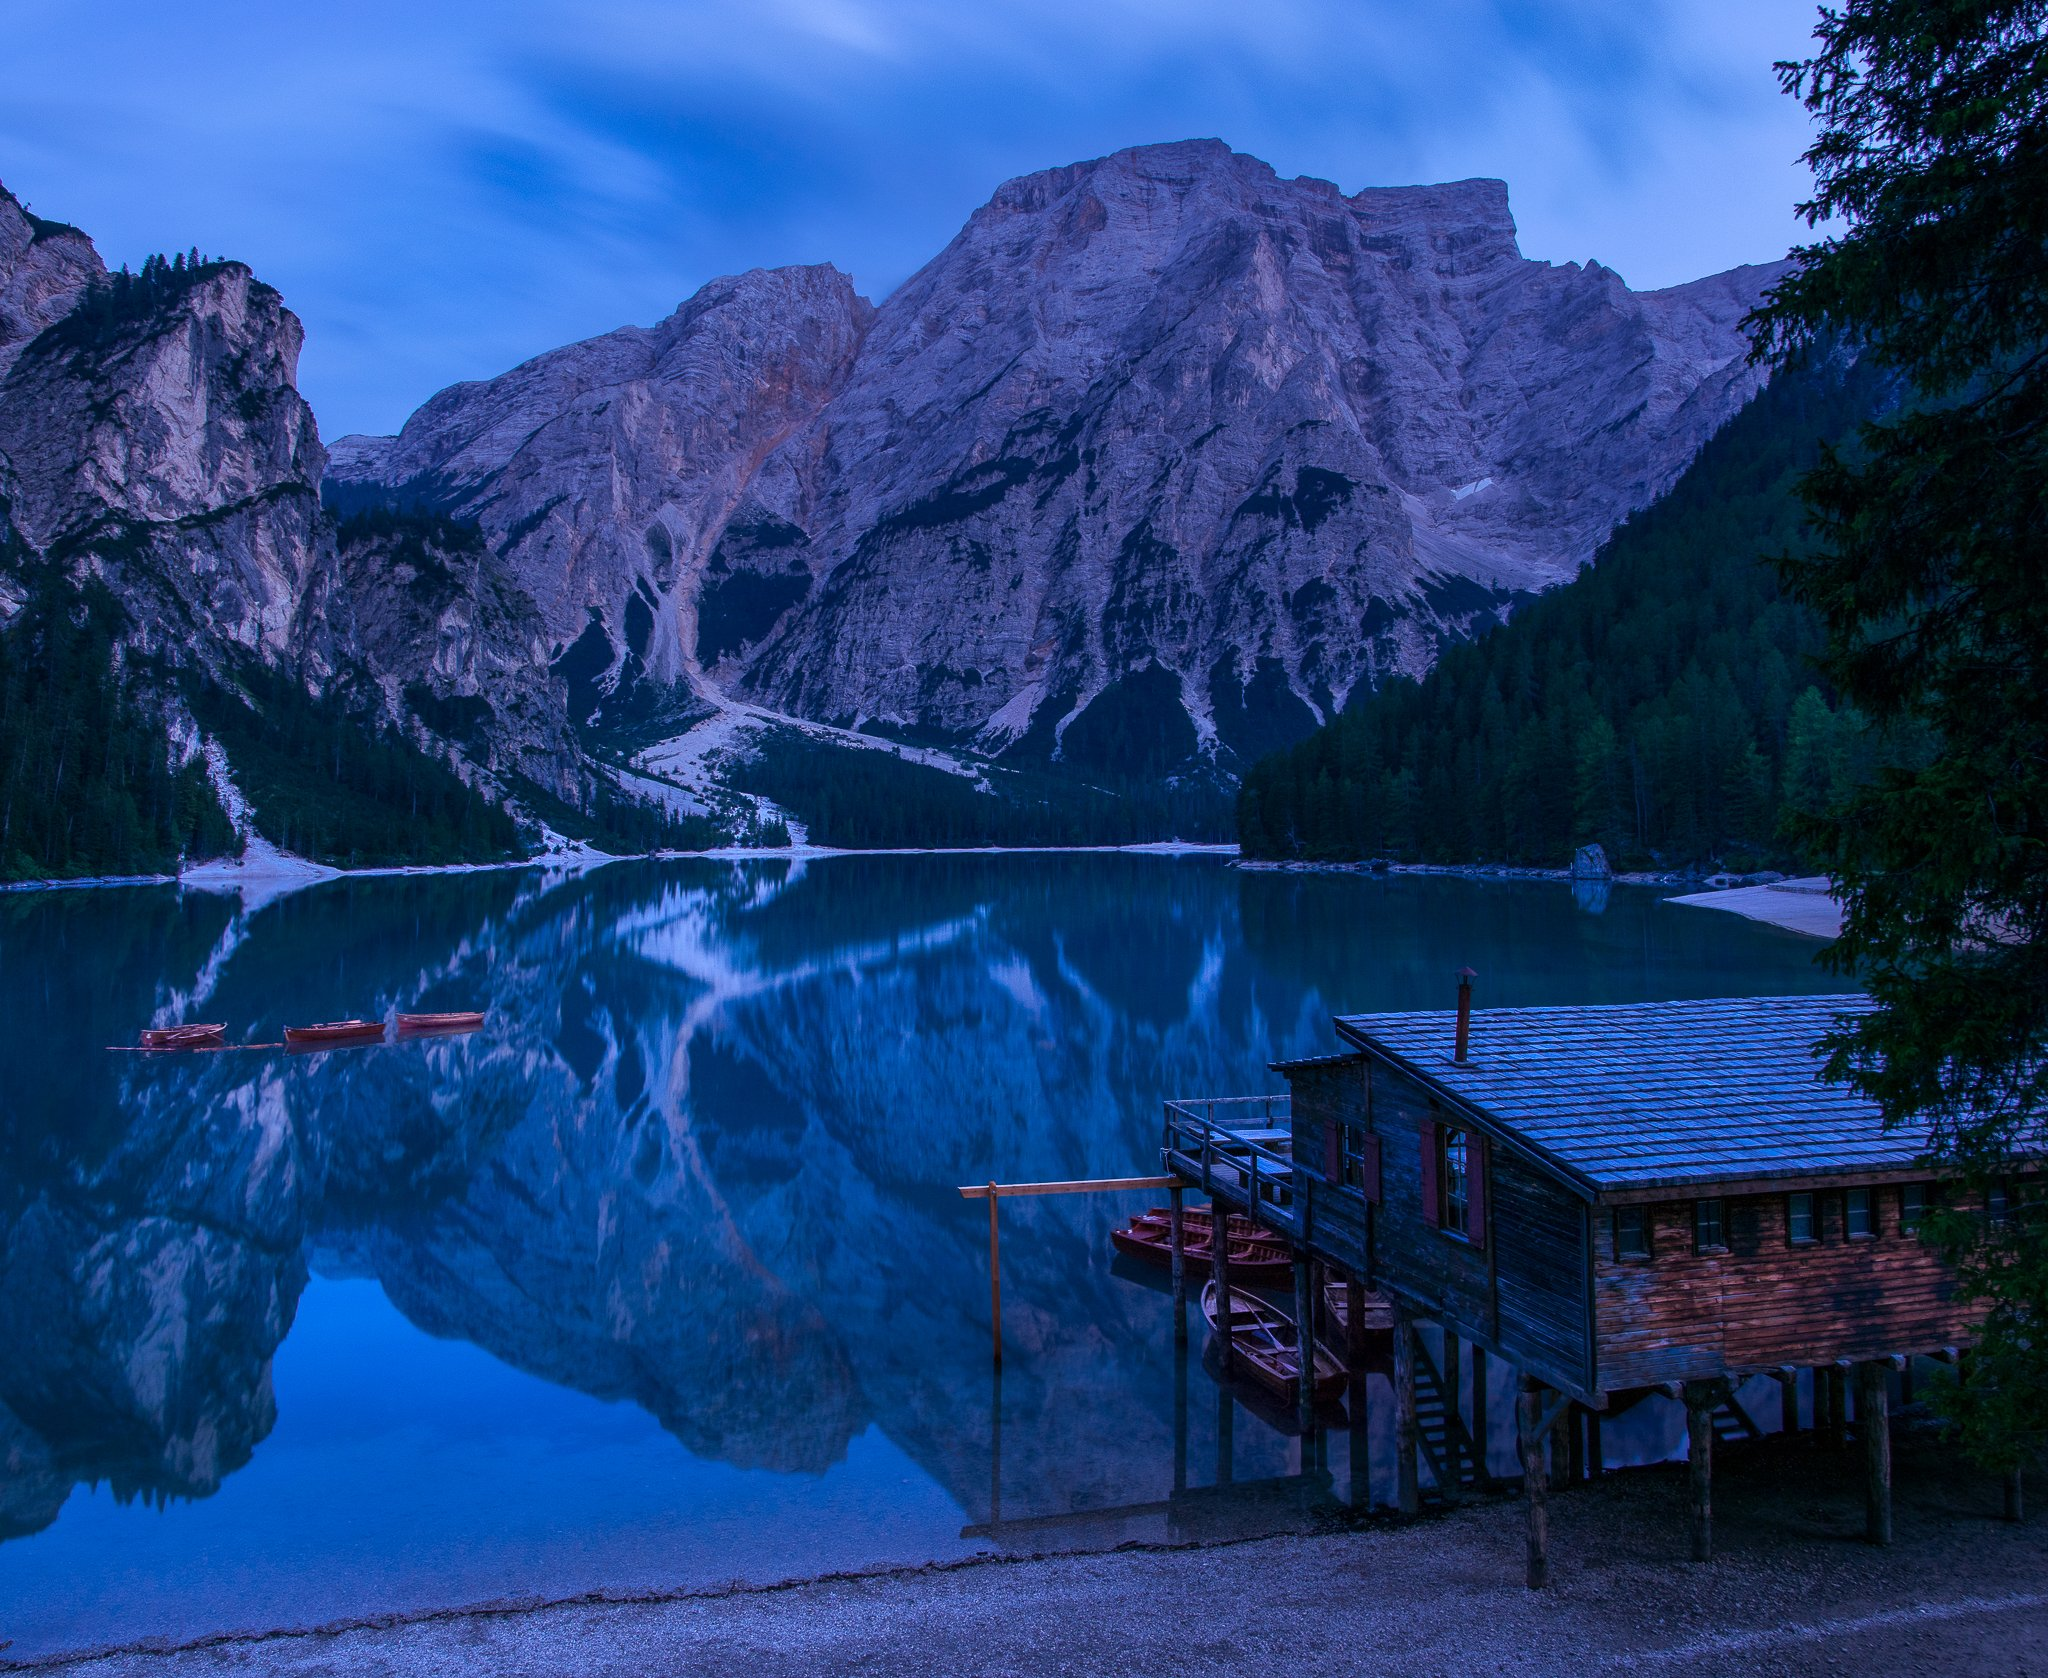 braies, italy, lake, blue hour, mountain, dolomites, alps, sunset, evening, trip, travel, adventure, journey, Mая Врънгова